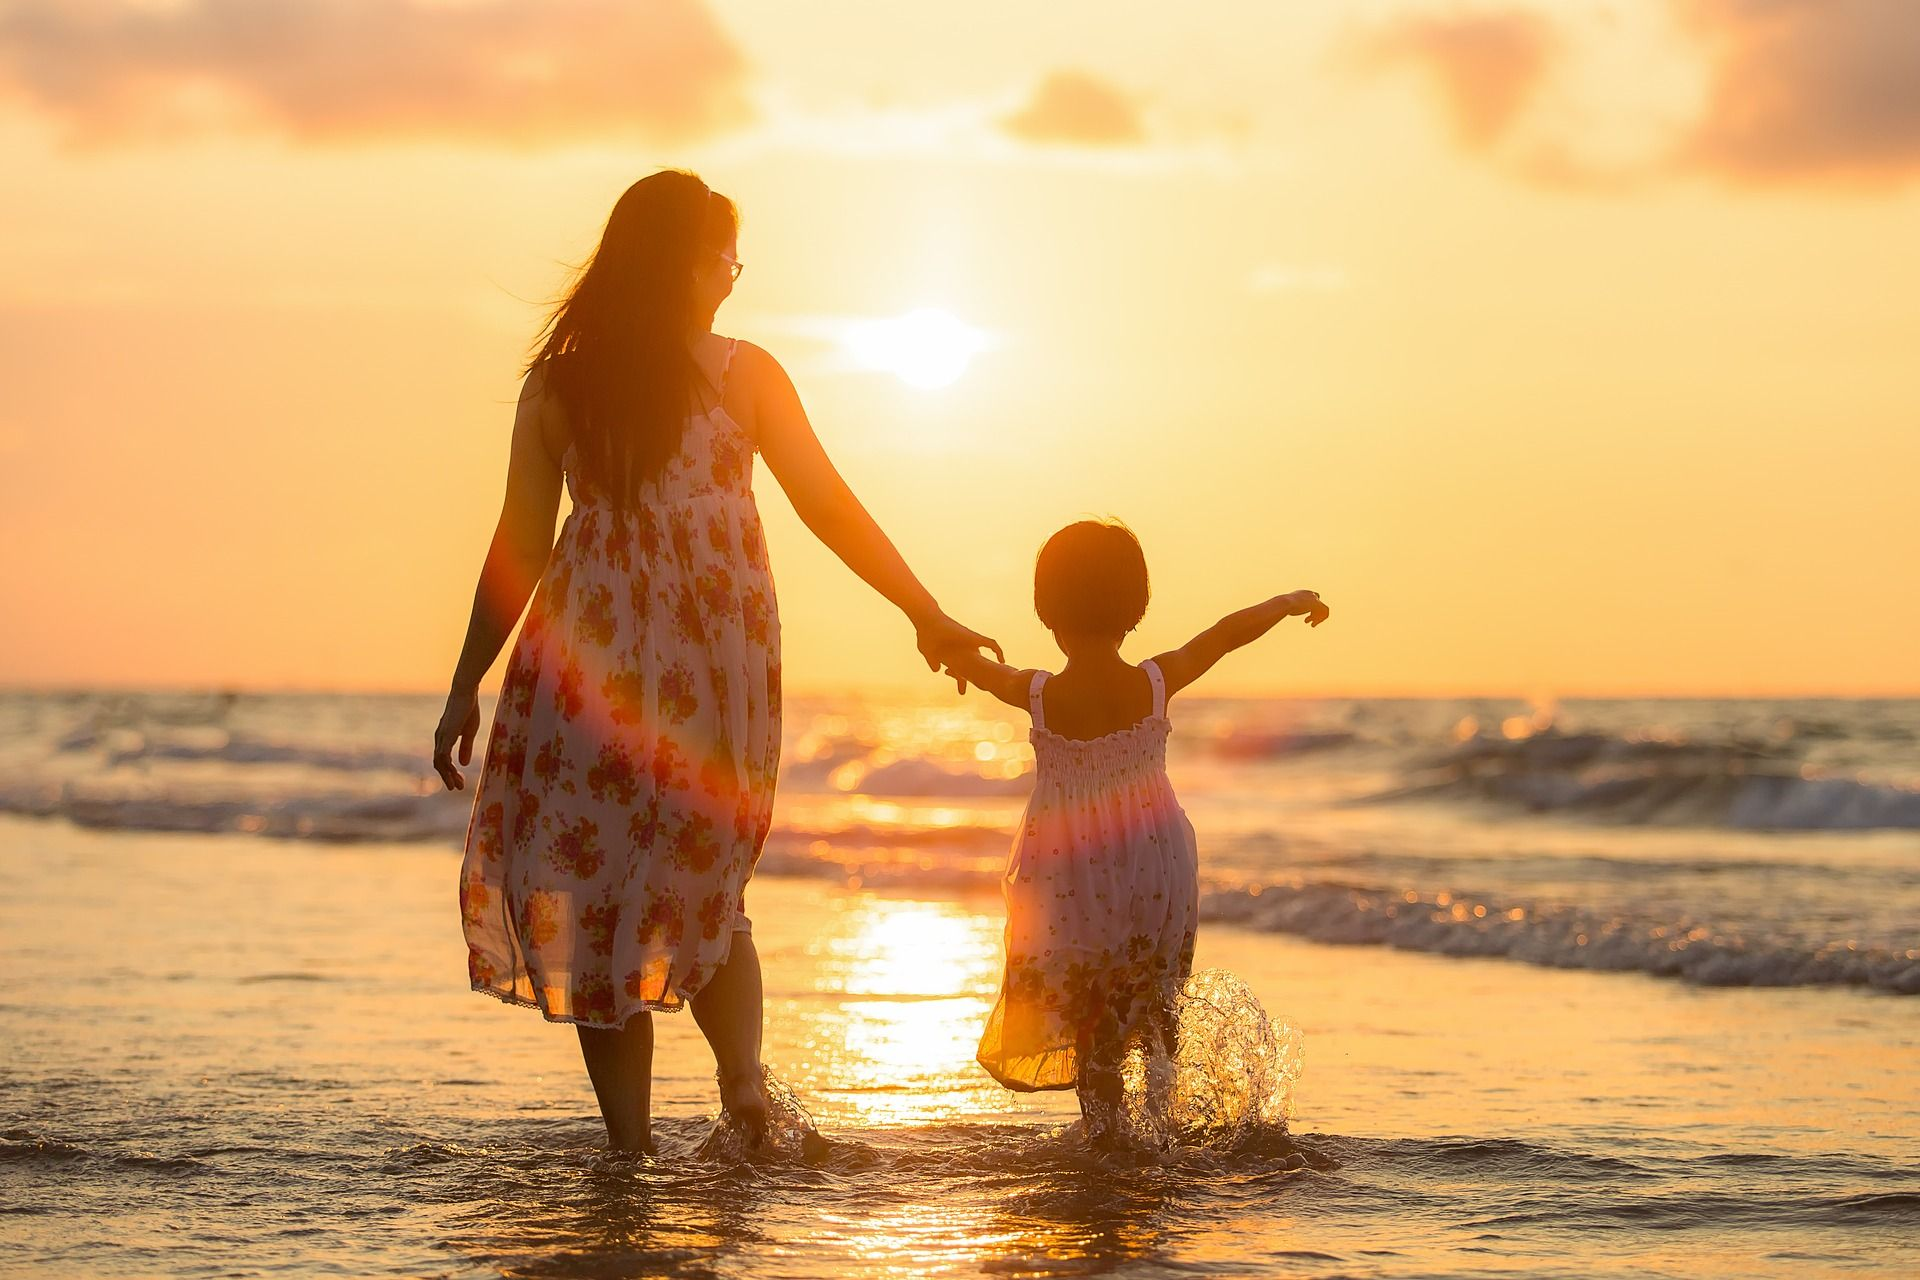 Mother's Influence on Children – May 12, 2019